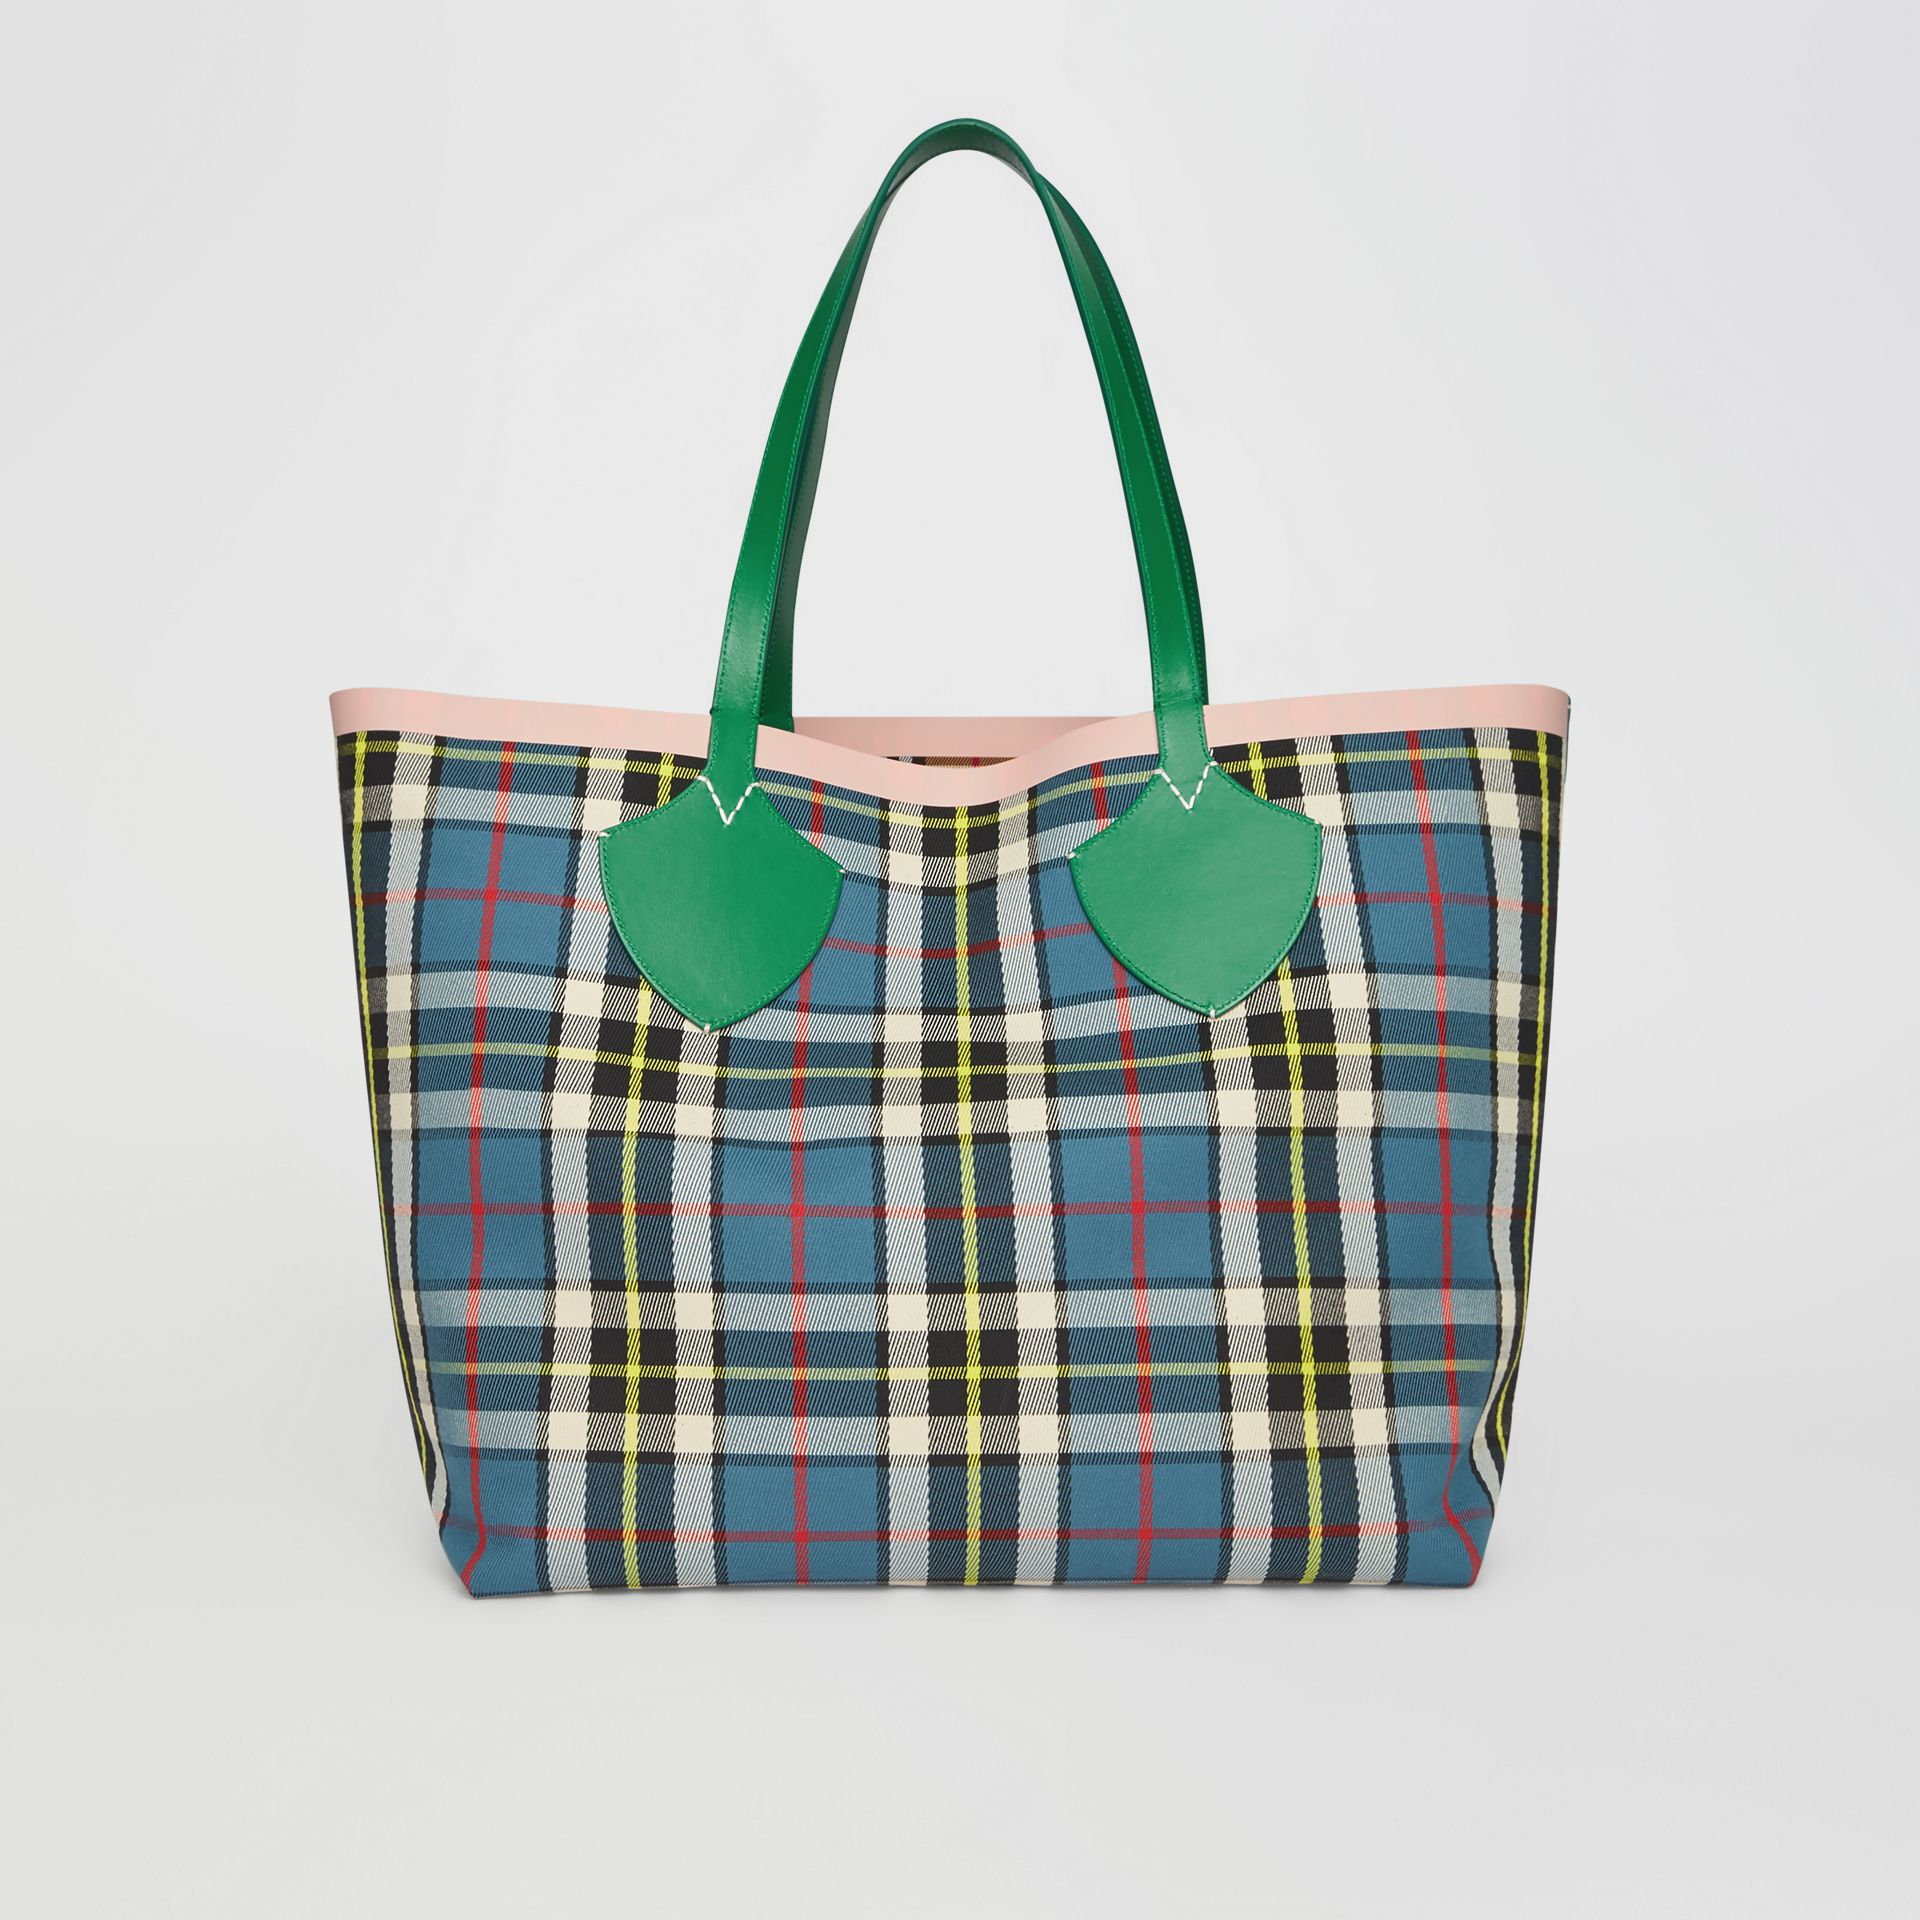 The Giant Reversible Tote in Vintage Check in Palm Green/pink Apricot - Women | Burberry Hong Kong - gallery image 9